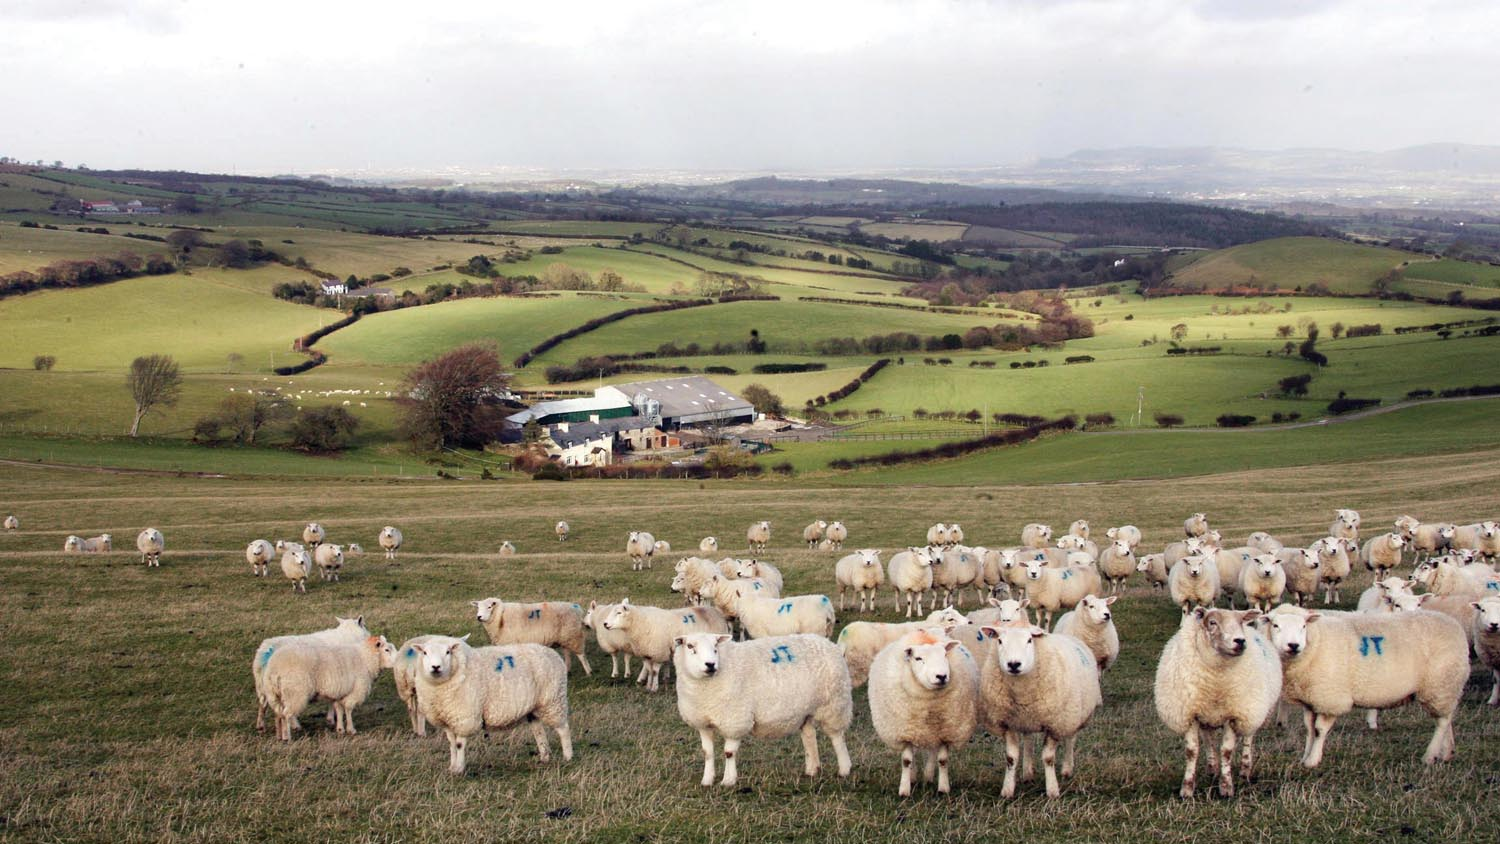 NFU Cymru asks members what they want their farming policy to be